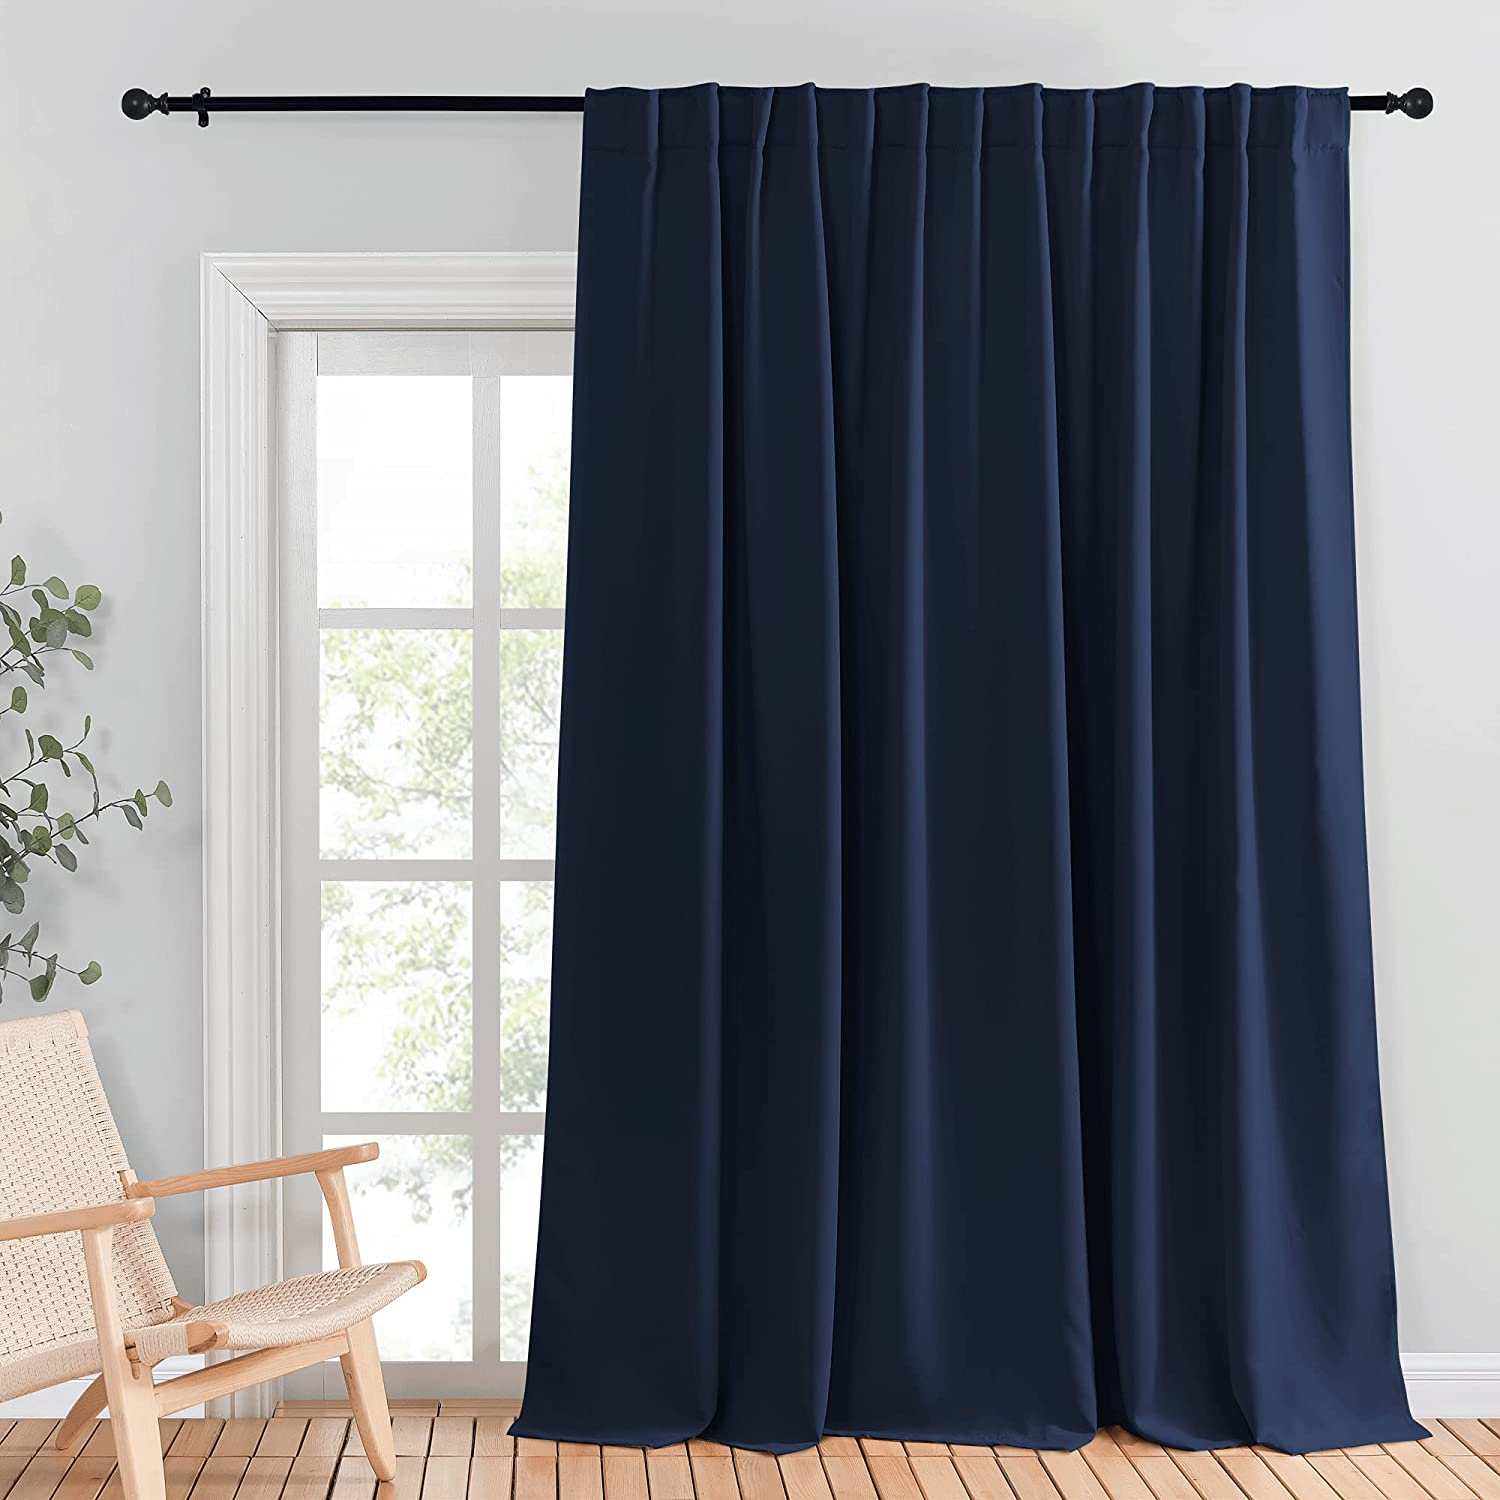 NICETOWN 予約 Blackout Wide Sliding 正規品スーパーSALE×店内全品キャンペーン Door Curtains Insulated Noise - R